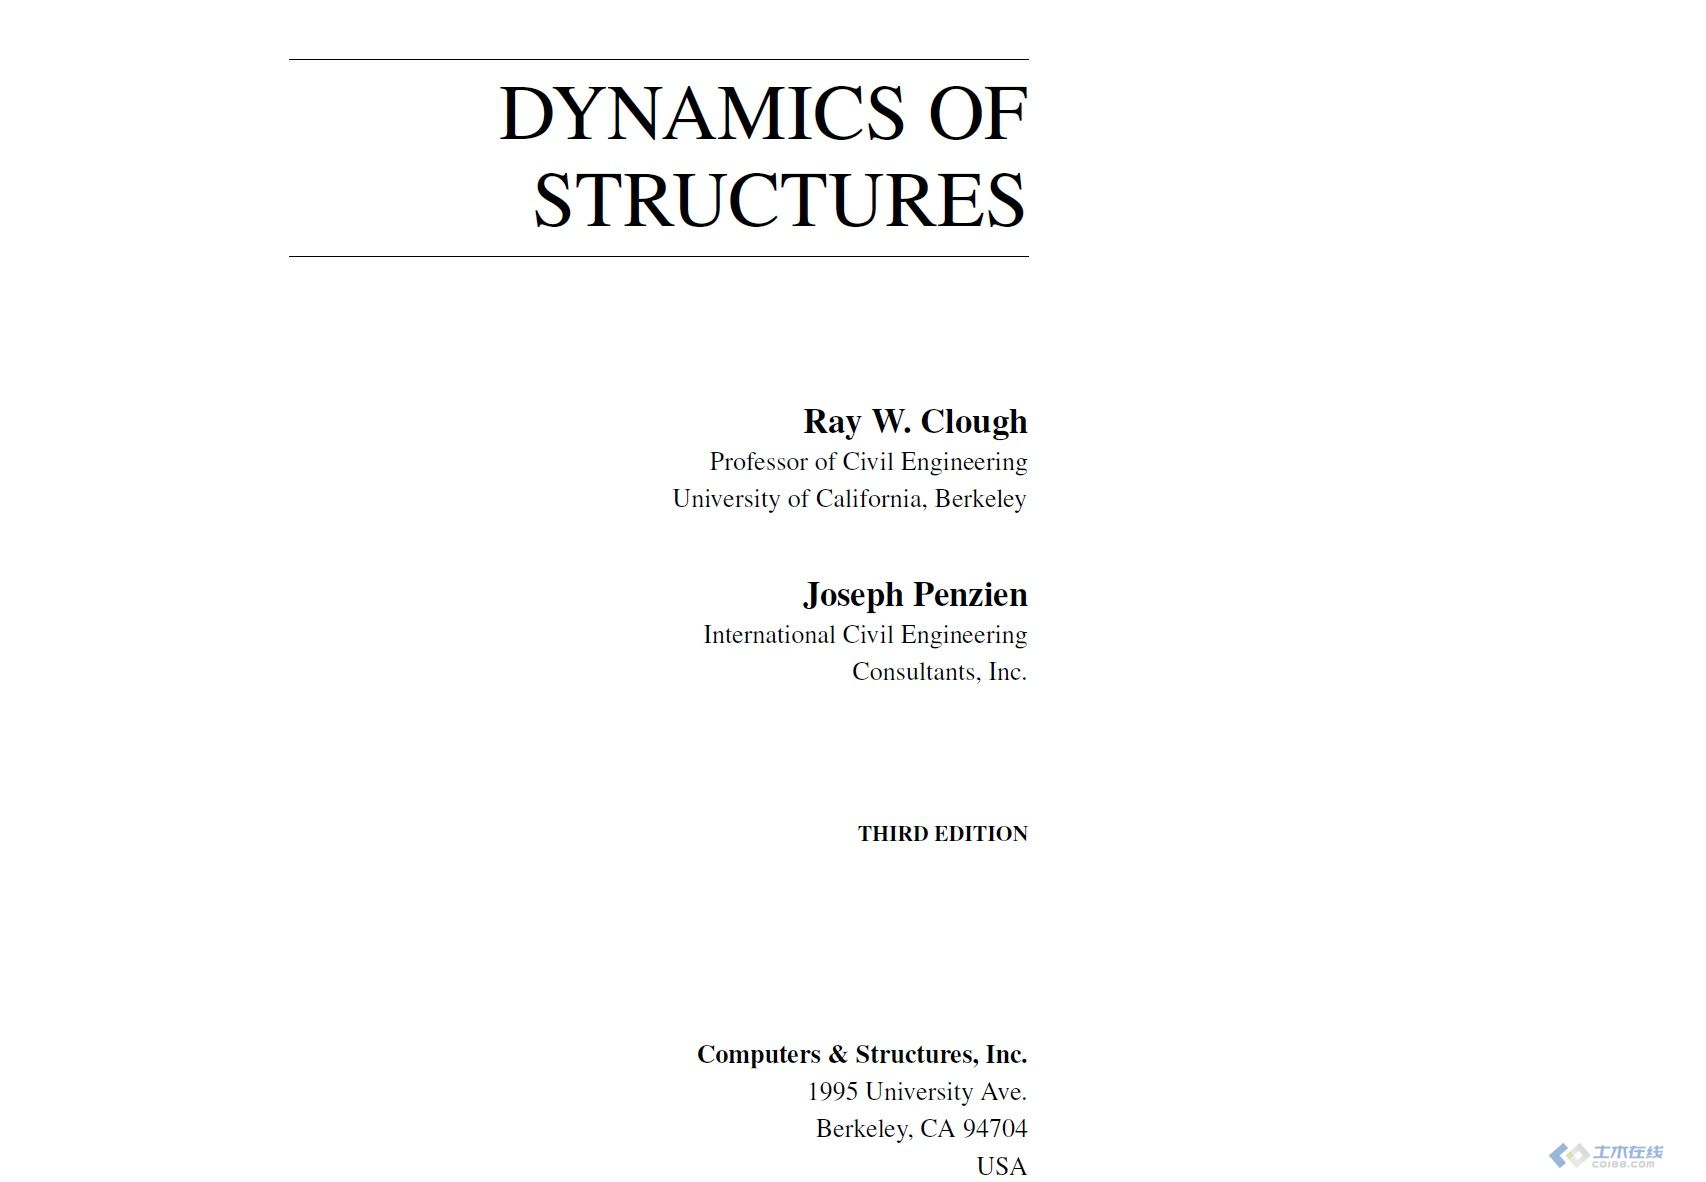 Dynamics of Structure-R.克拉夫.jpg